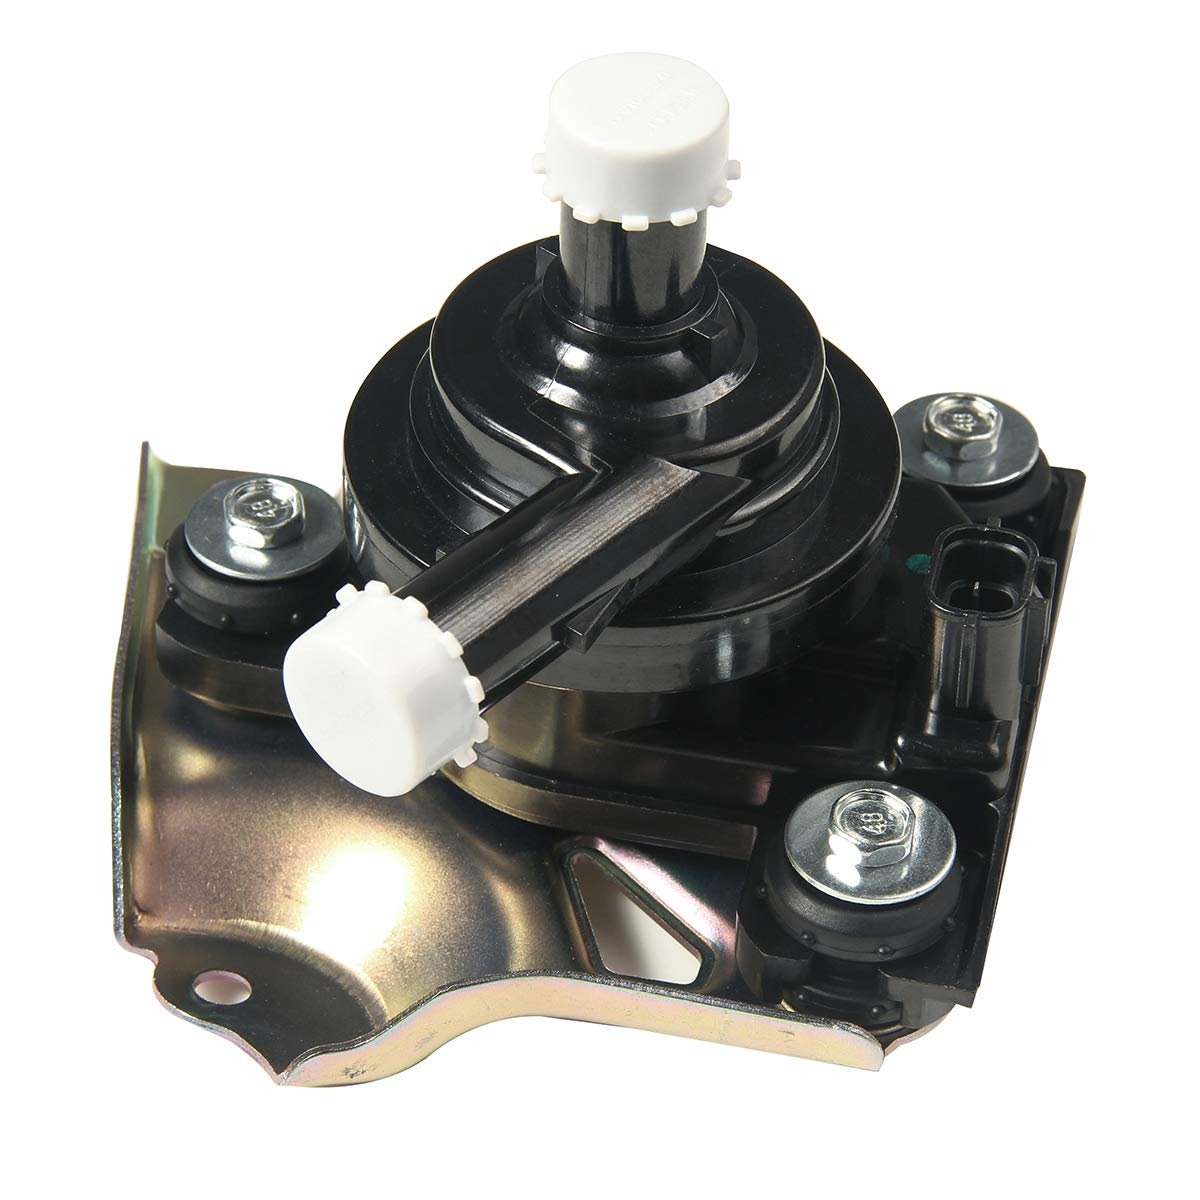 G9020-47031 Engine Coolant Inverter Electric Water Pump Assembly 12V with Bracket | for 2004-2009 Toyota Prius Hybrid 1.5L | #G9020-47031, 04000-32528